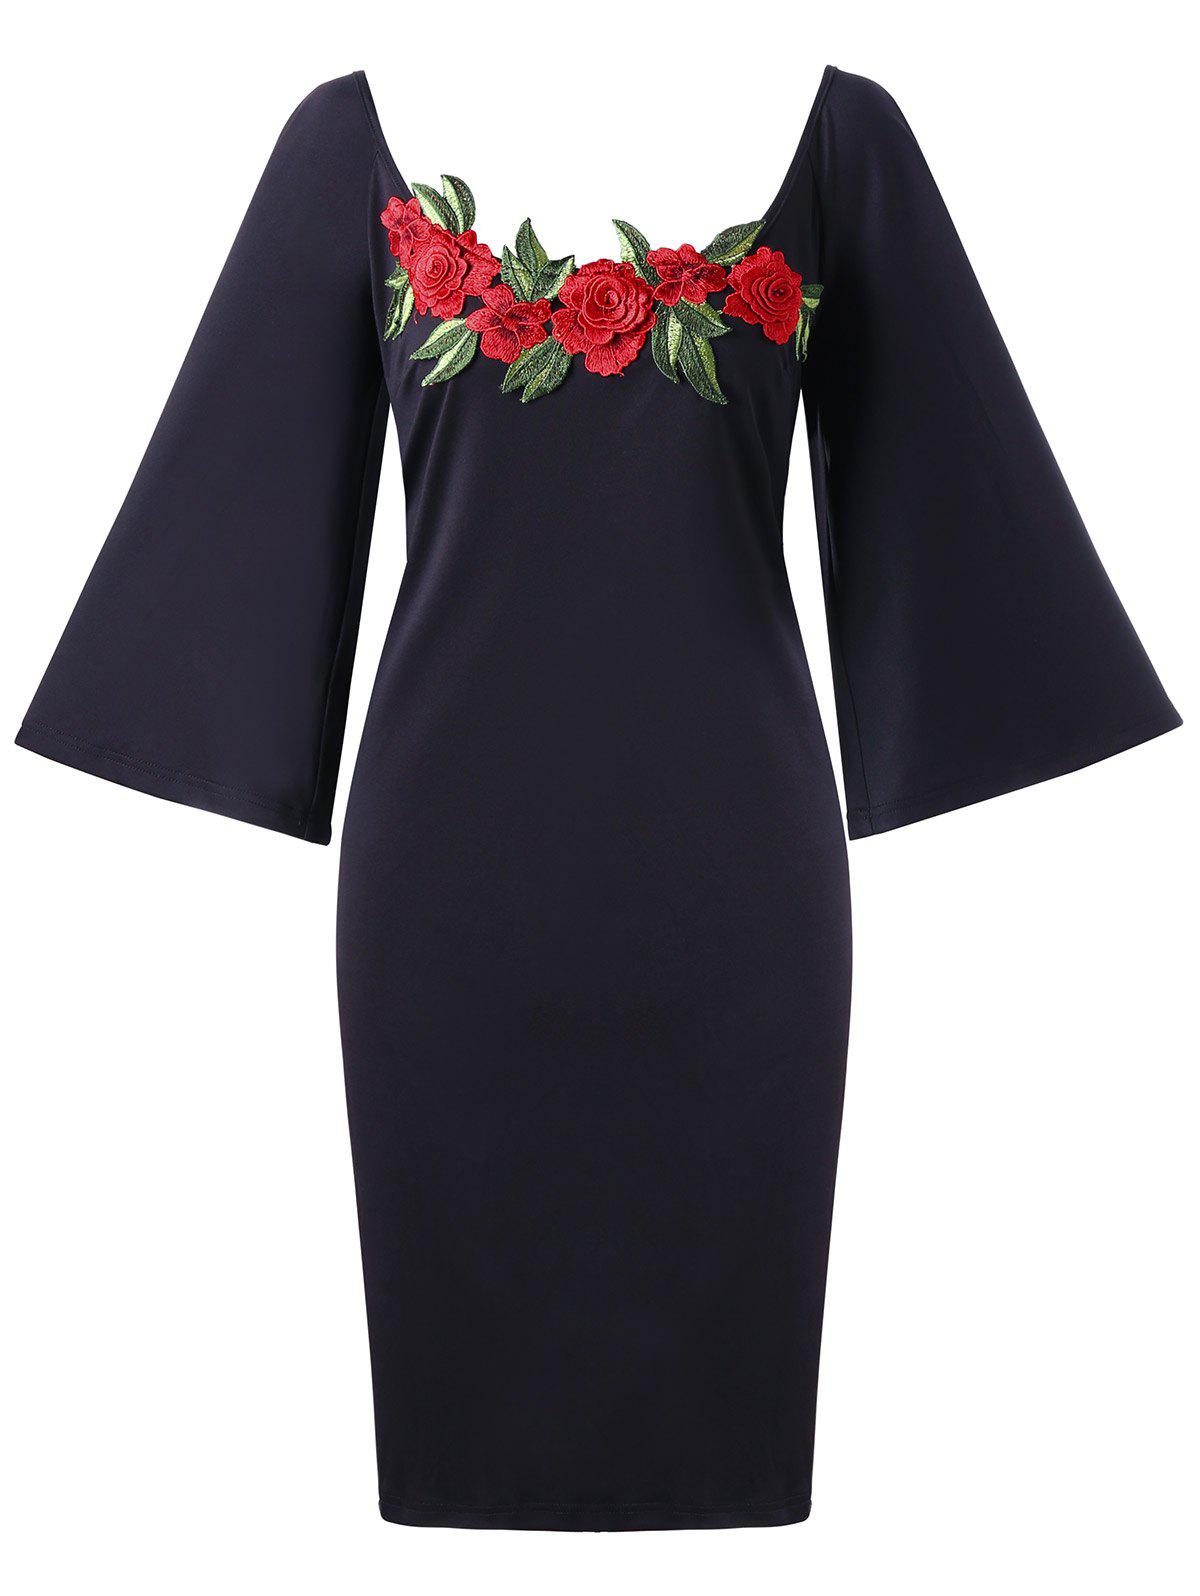 Flare Sleeve Plus Size Embroidery Bodycon DressWOMEN<br><br>Size: 2XL; Color: BLACK; Style: Brief; Material: Polyester,Spandex; Silhouette: Bodycon; Dresses Length: Knee-Length; Neckline: Scoop Neck; Sleeve Length: 3/4 Length Sleeves; Embellishment: Embroidery; Pattern Type: Solid; With Belt: No; Season: Fall,Spring; Weight: 0.3670kg; Package Contents: 1 x Dress;